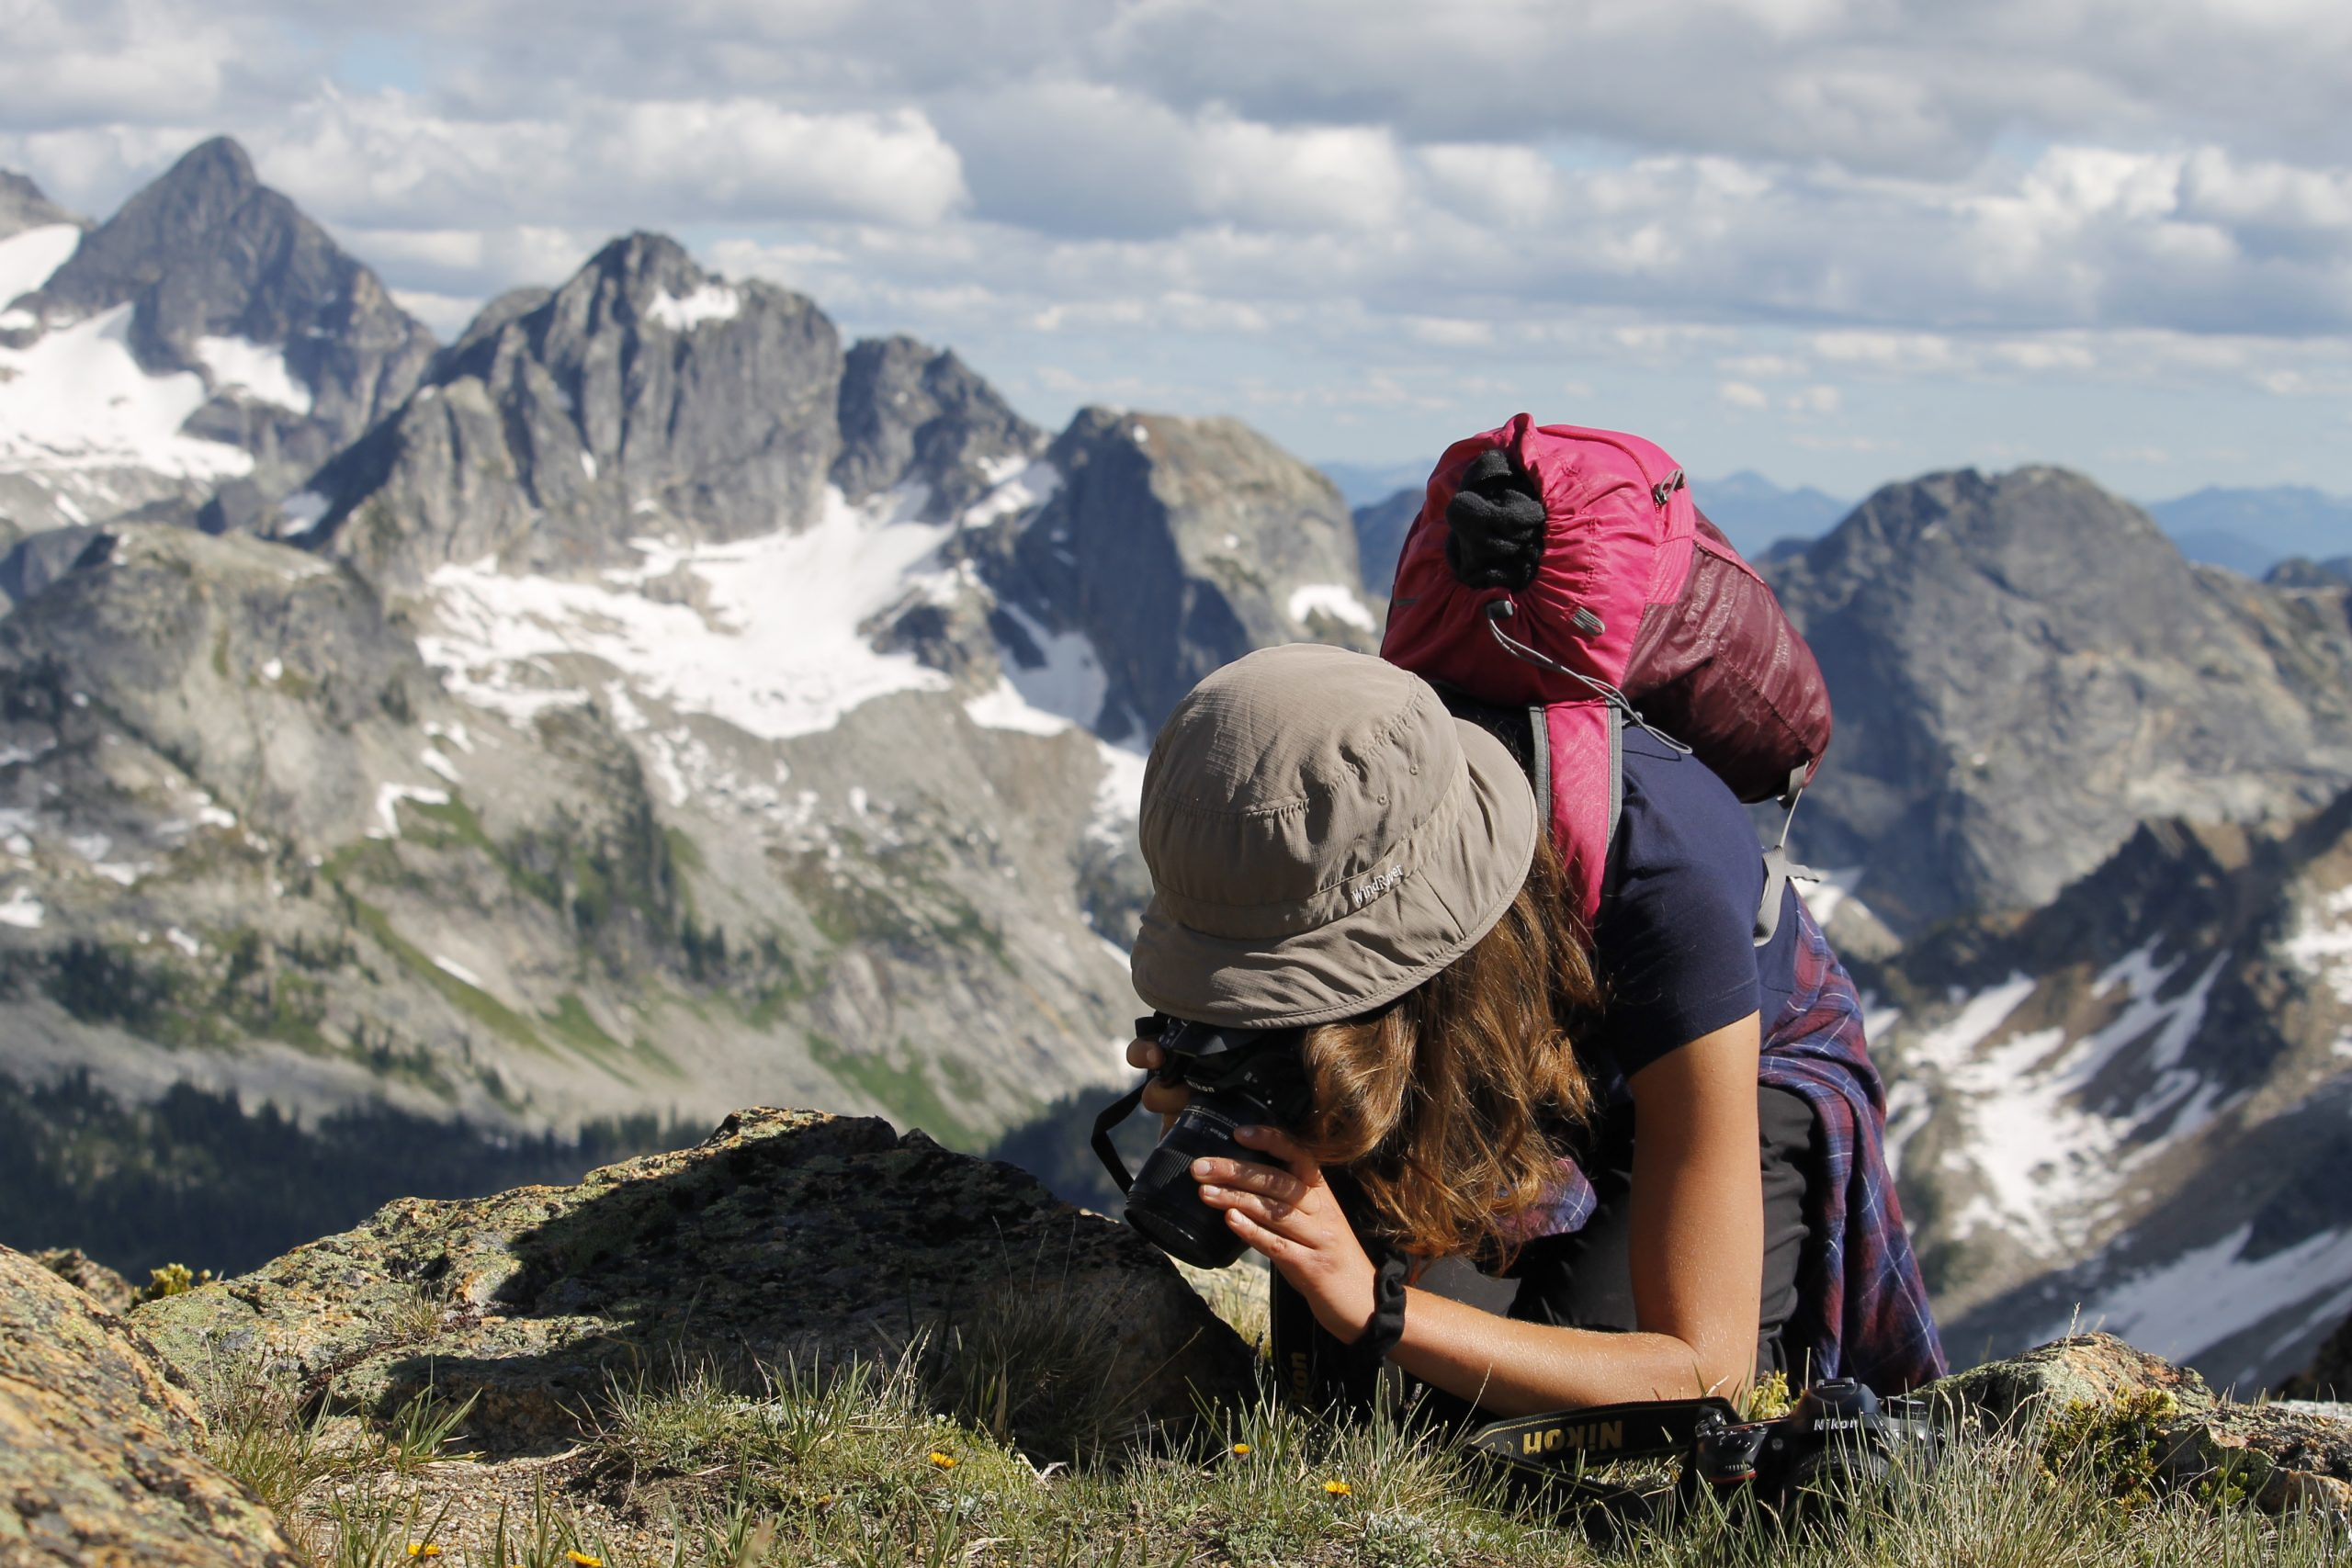 A woman on a mountain bends over to photograph a plant. She is wearing a brimmed hat and a pink backpack. A mountain range is in the background.